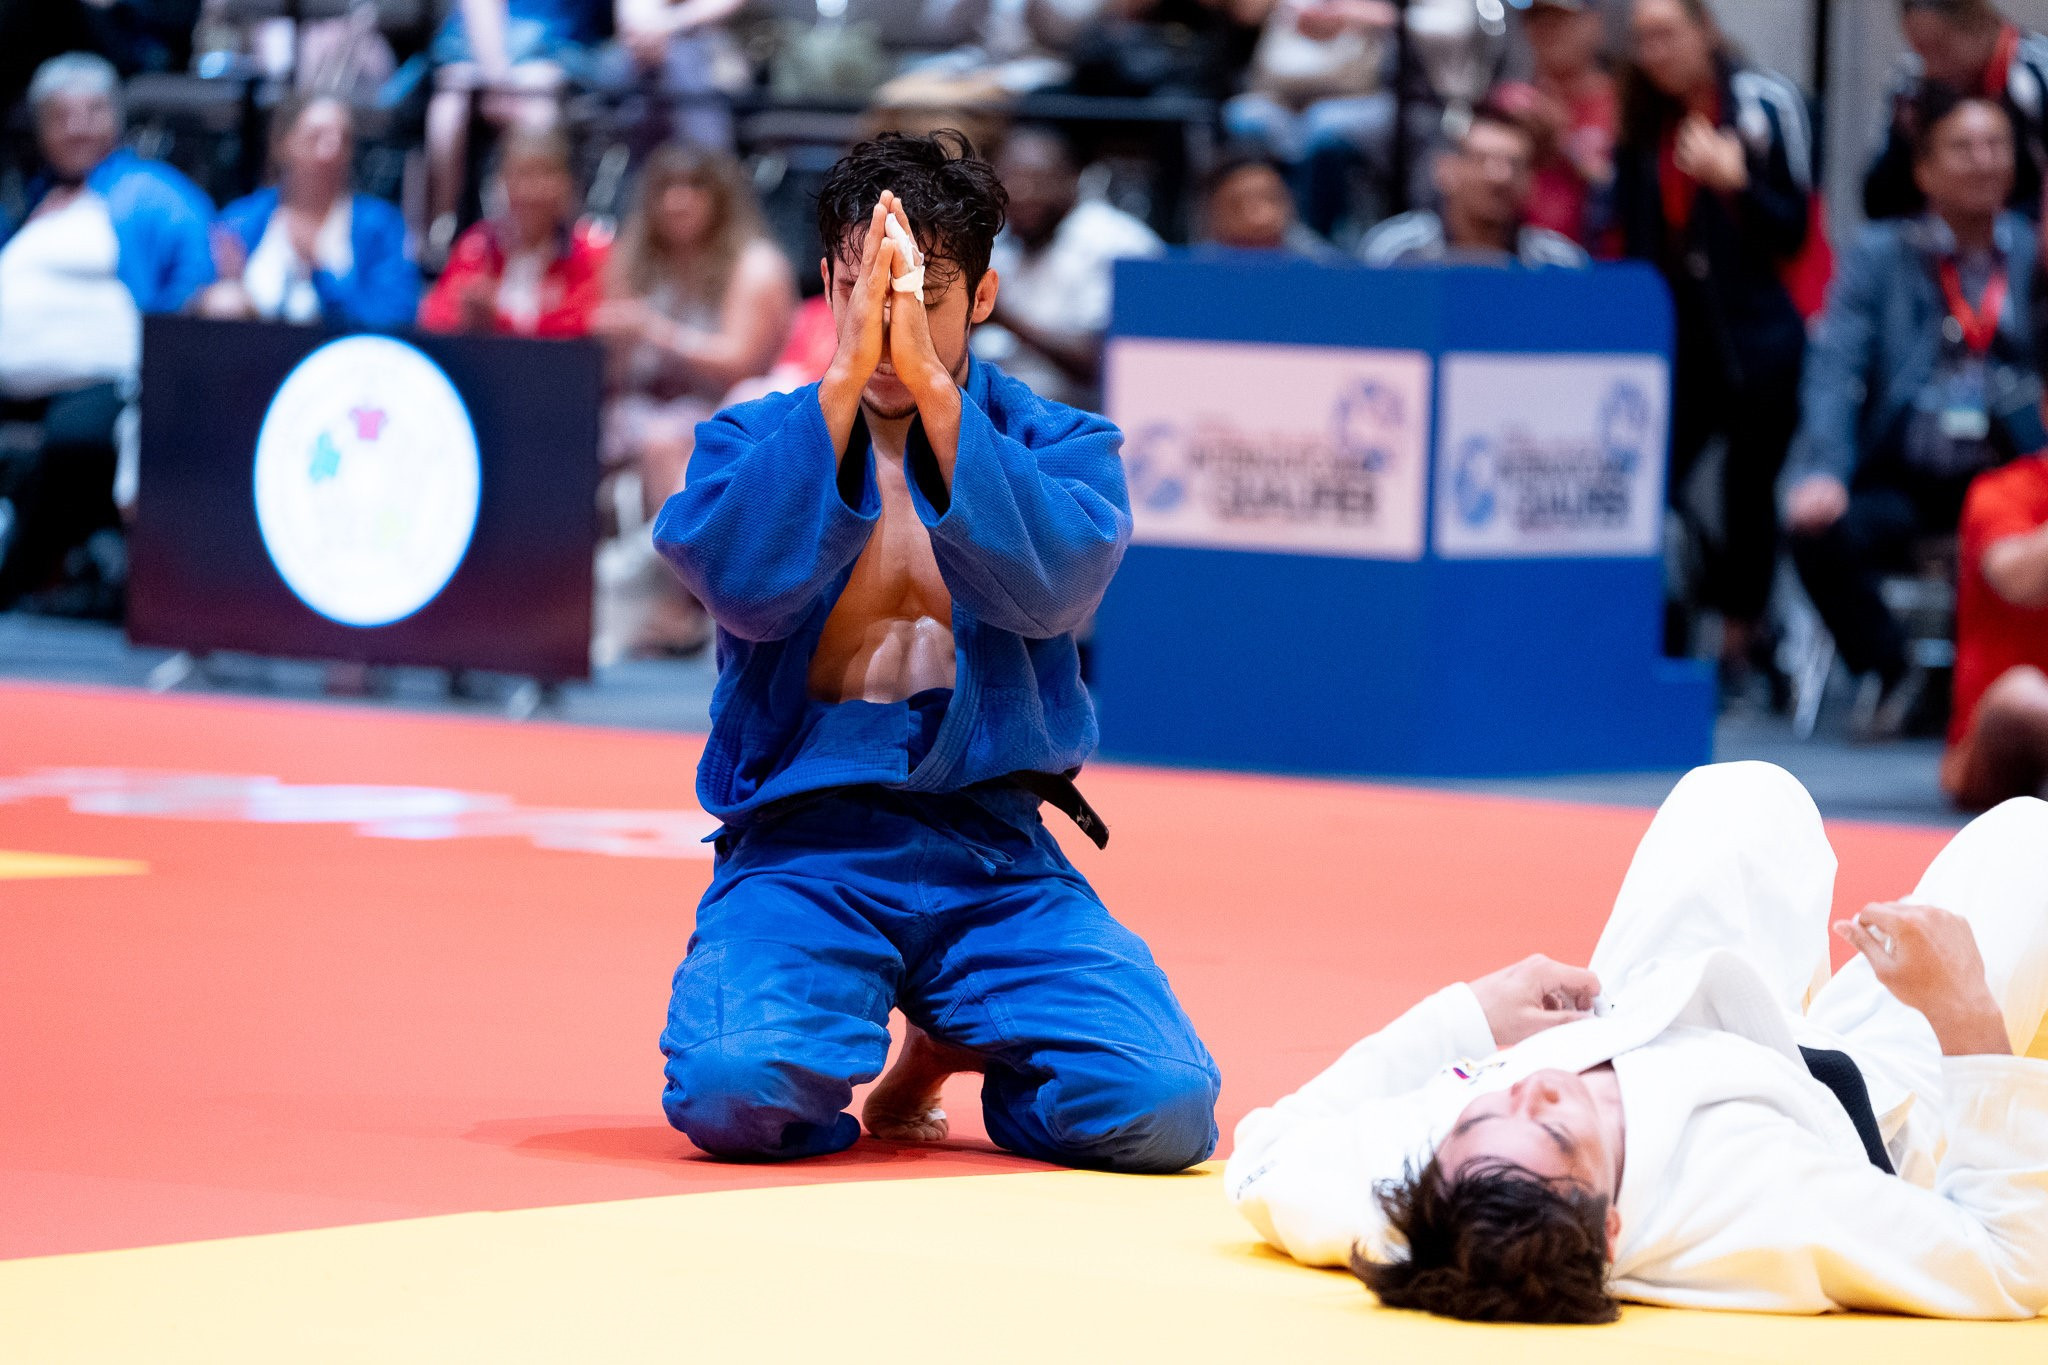 Mexico's Avila Sanchez back on top at IBSA Judo International Qualifier for Tokyo 2020